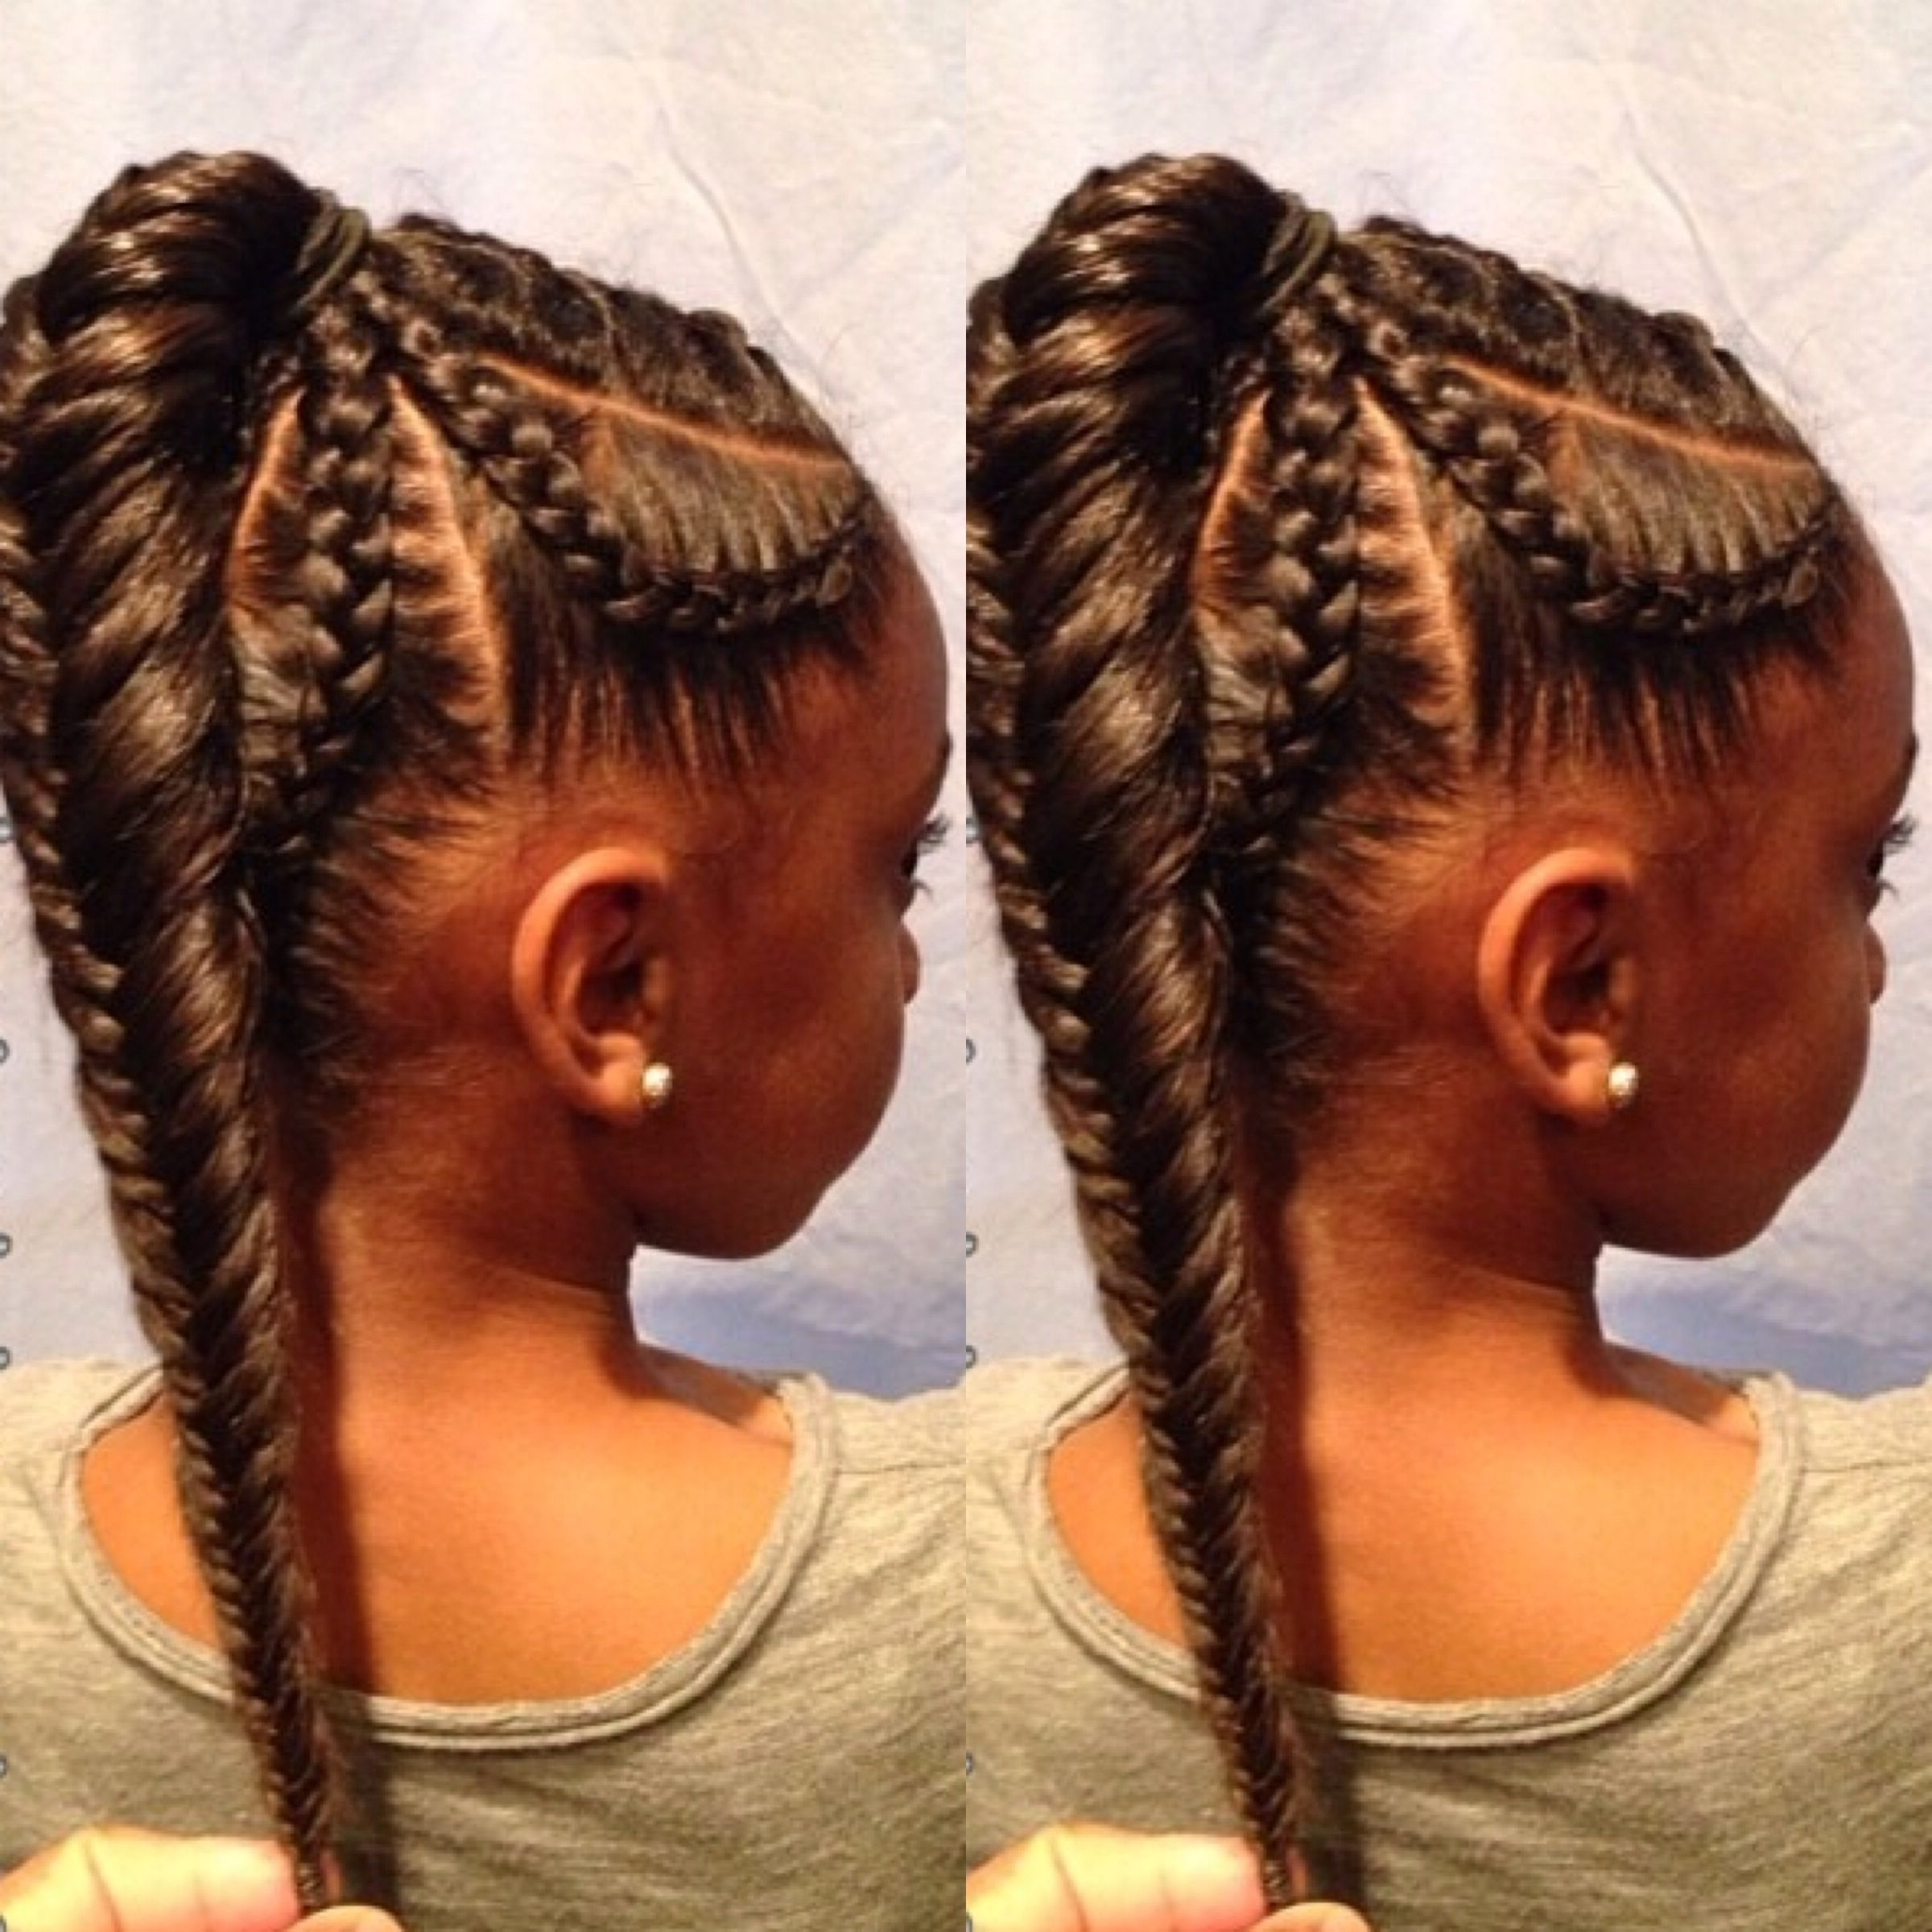 Latest Intricate And Adorable French Braid Ponytail Hairstyles For 70 Best Black Braided Hairstyles That Turn Heads (Gallery 8 of 20)